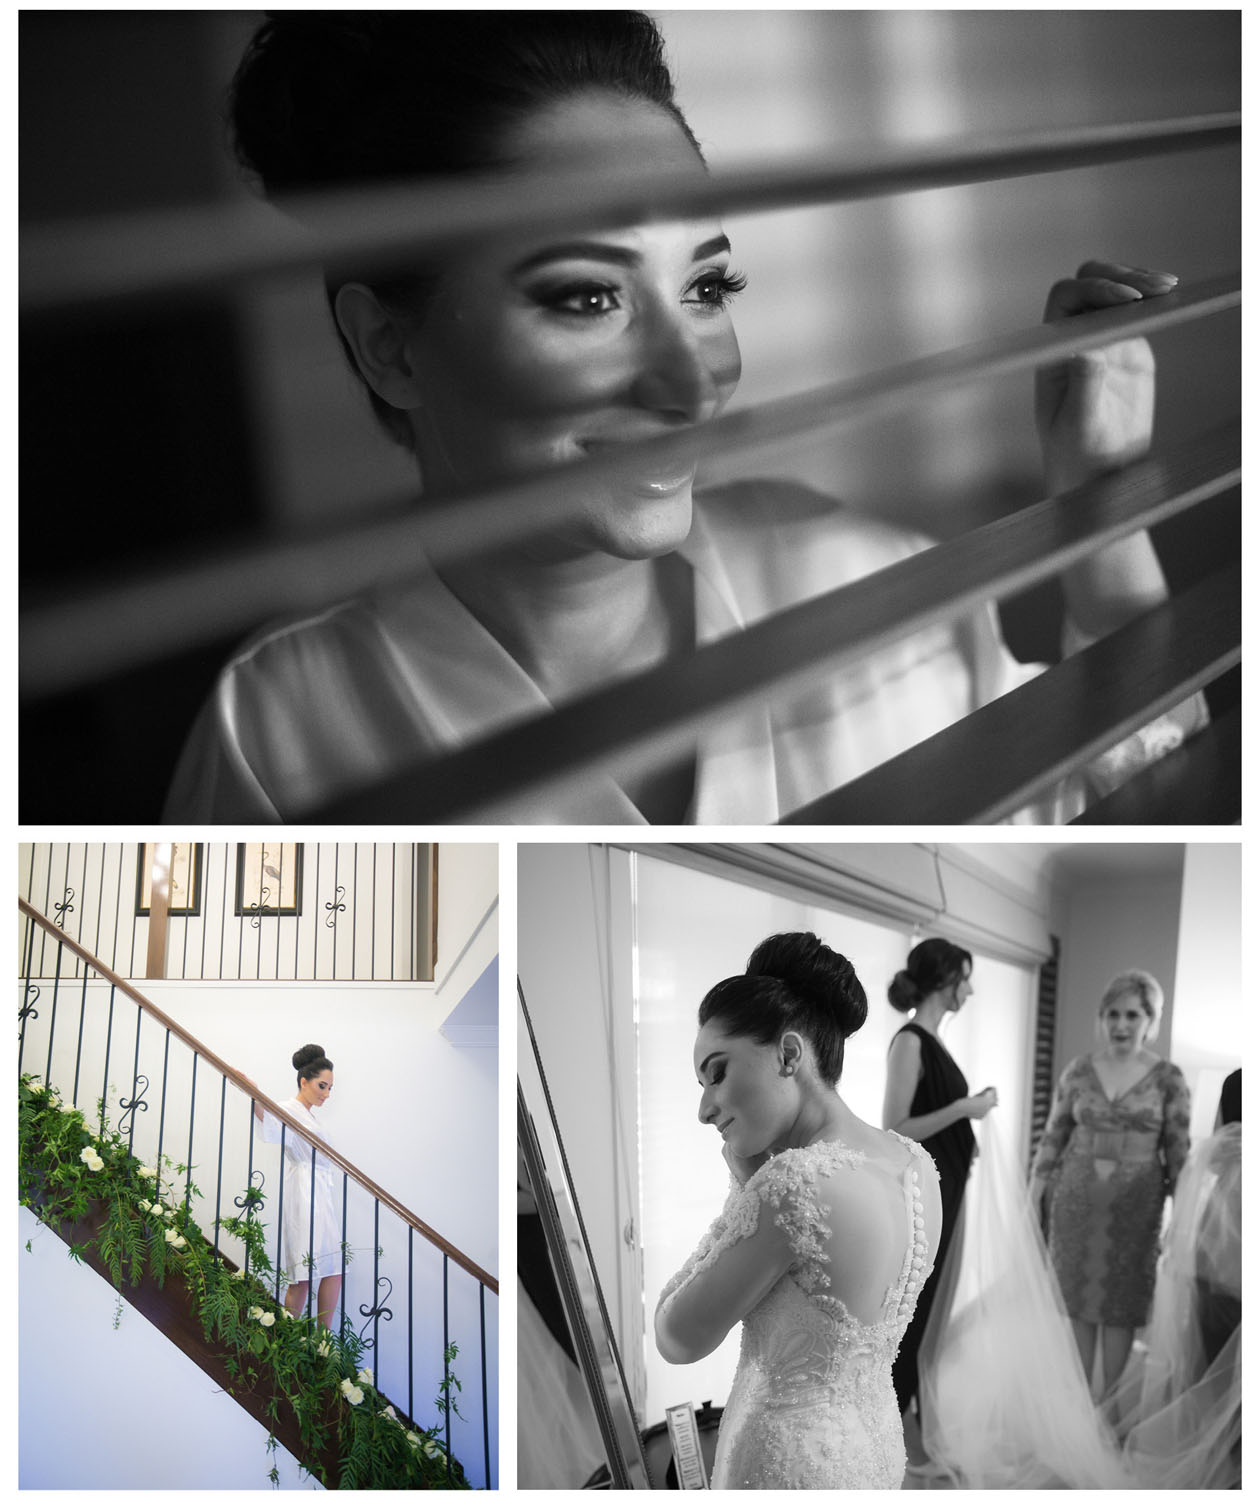 The bride wears earrings in front of the mirror